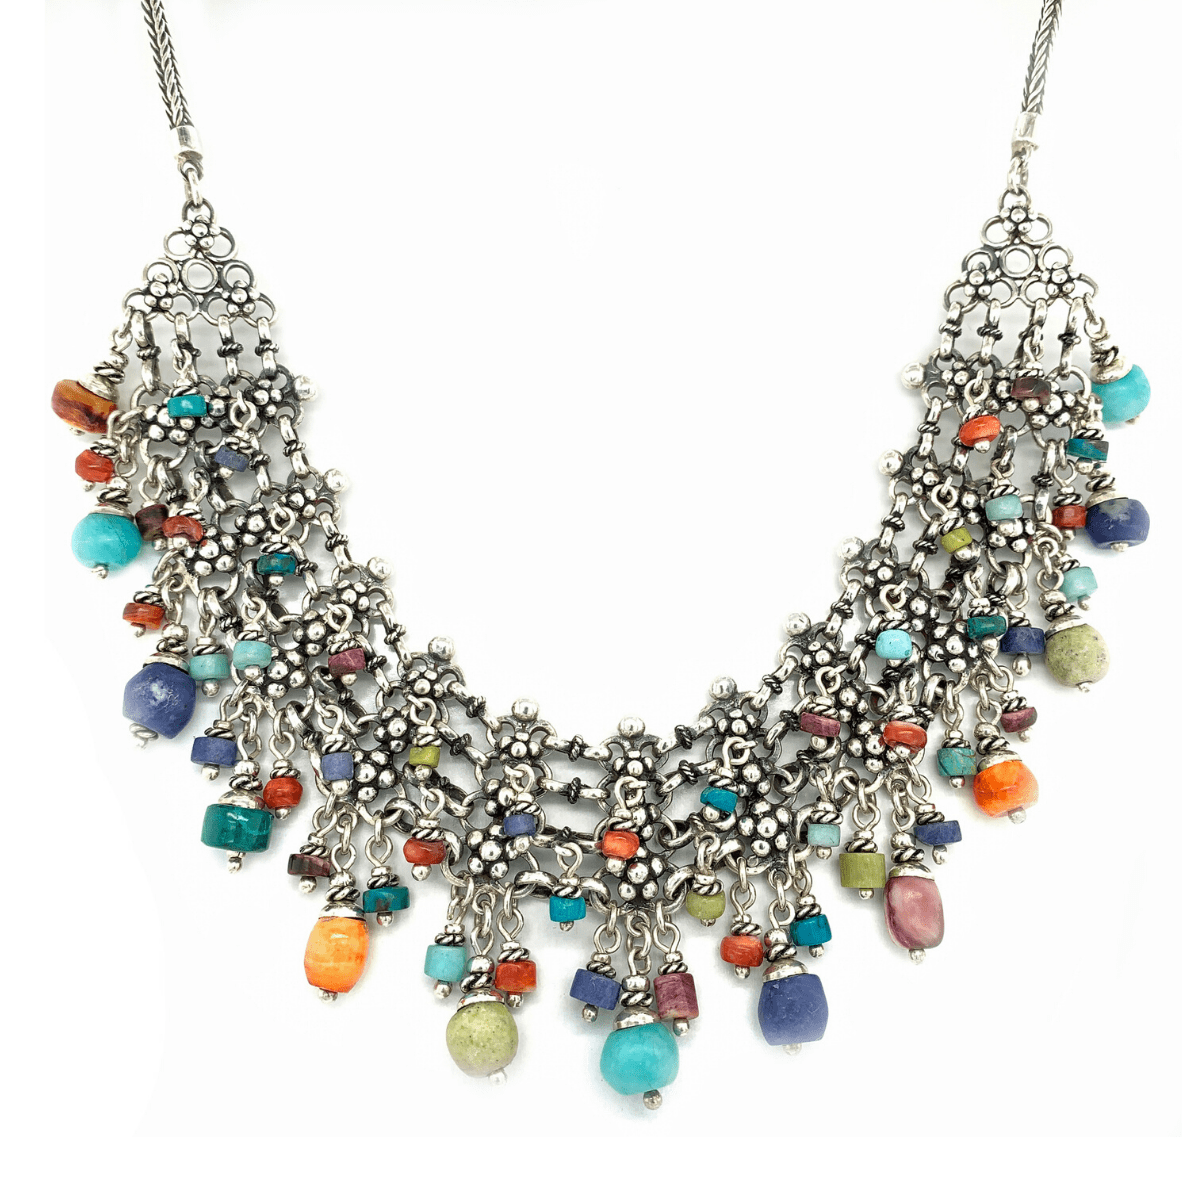 Multi-Colored Beads Cascade & Burnished Sterling Silver Necklace - Qinti - The Peruvian Shop